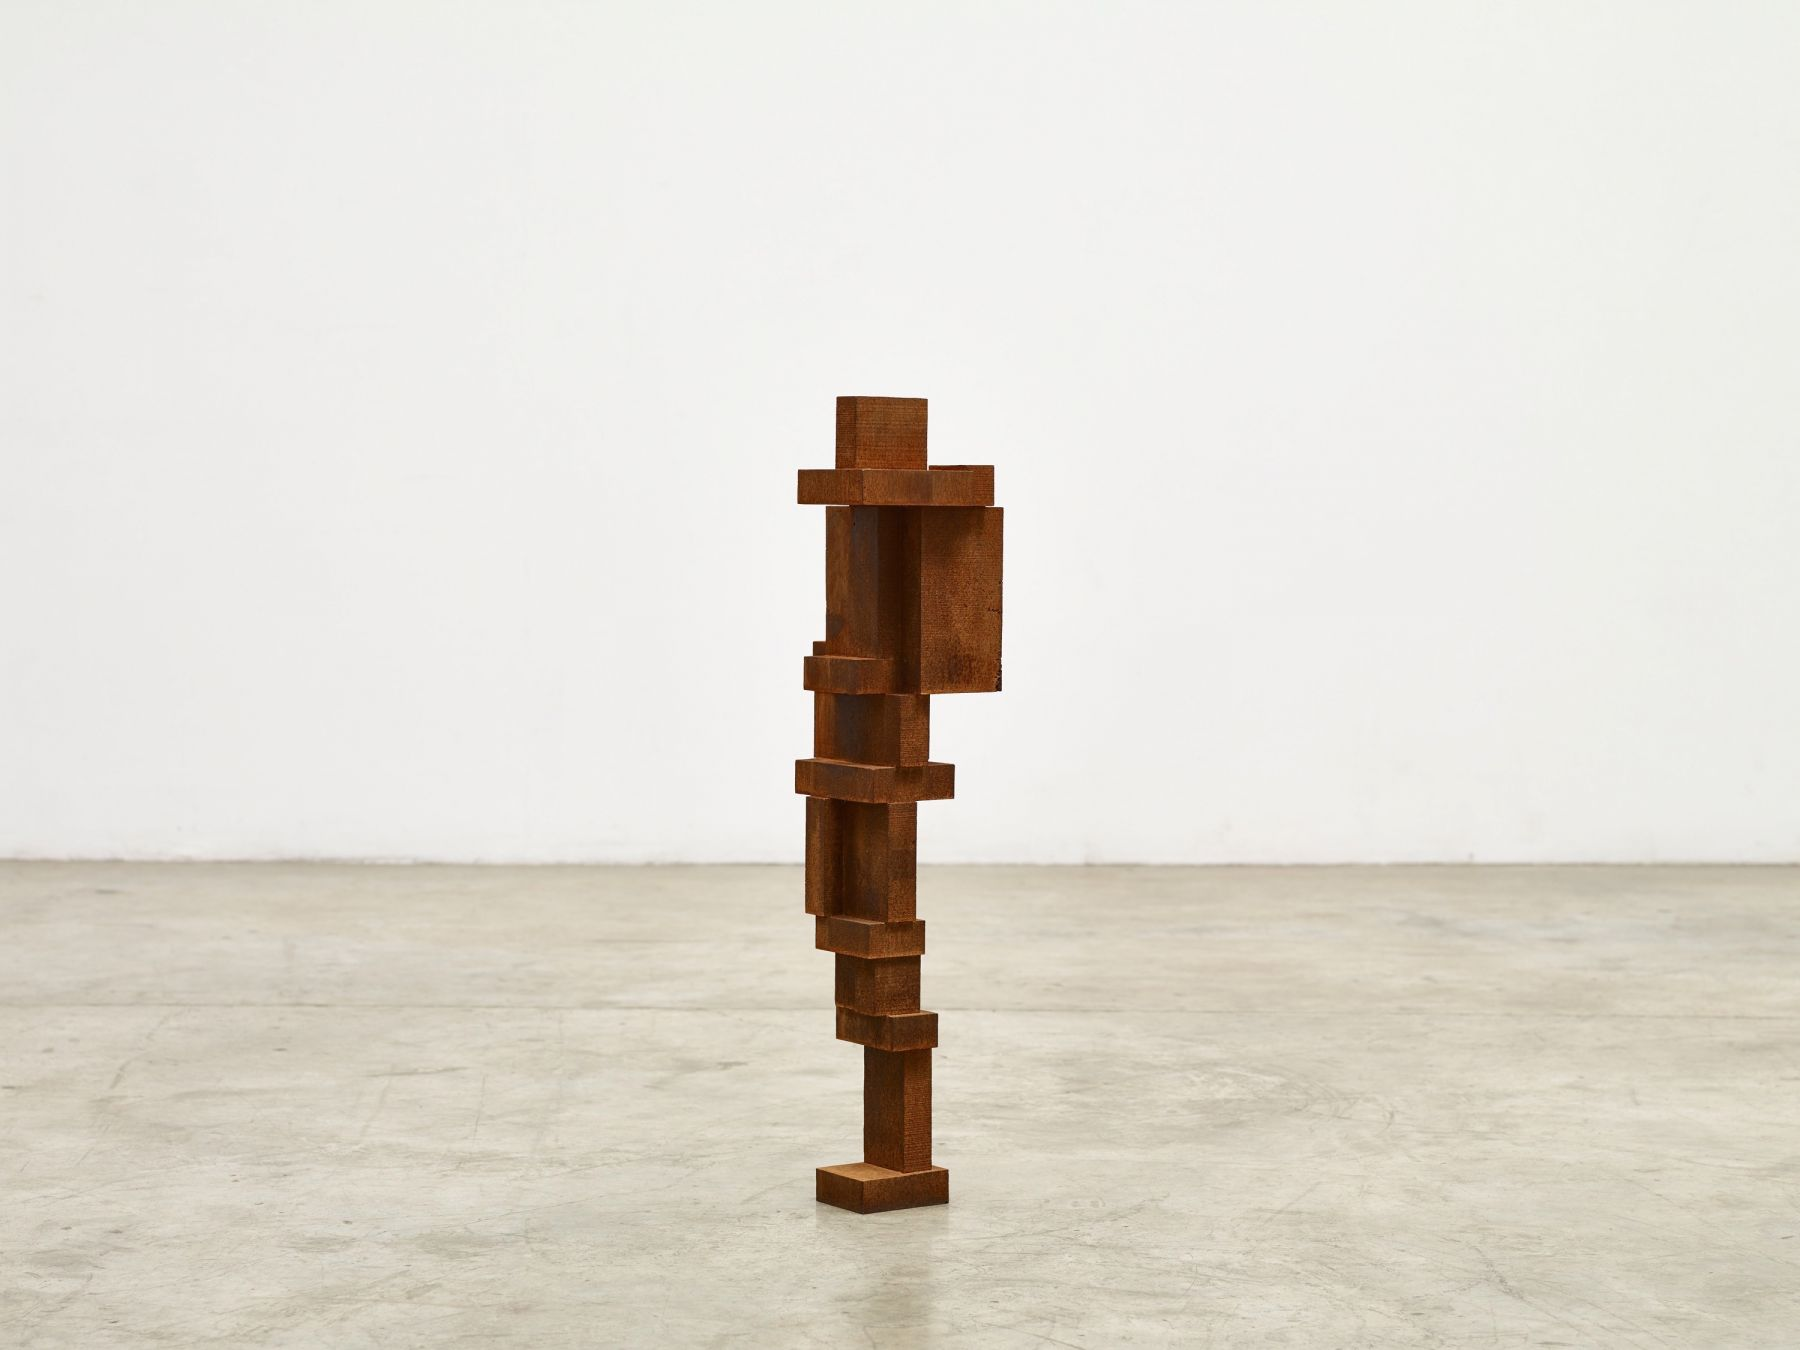 Antony Gormley SMALL SHELTER II, 2015